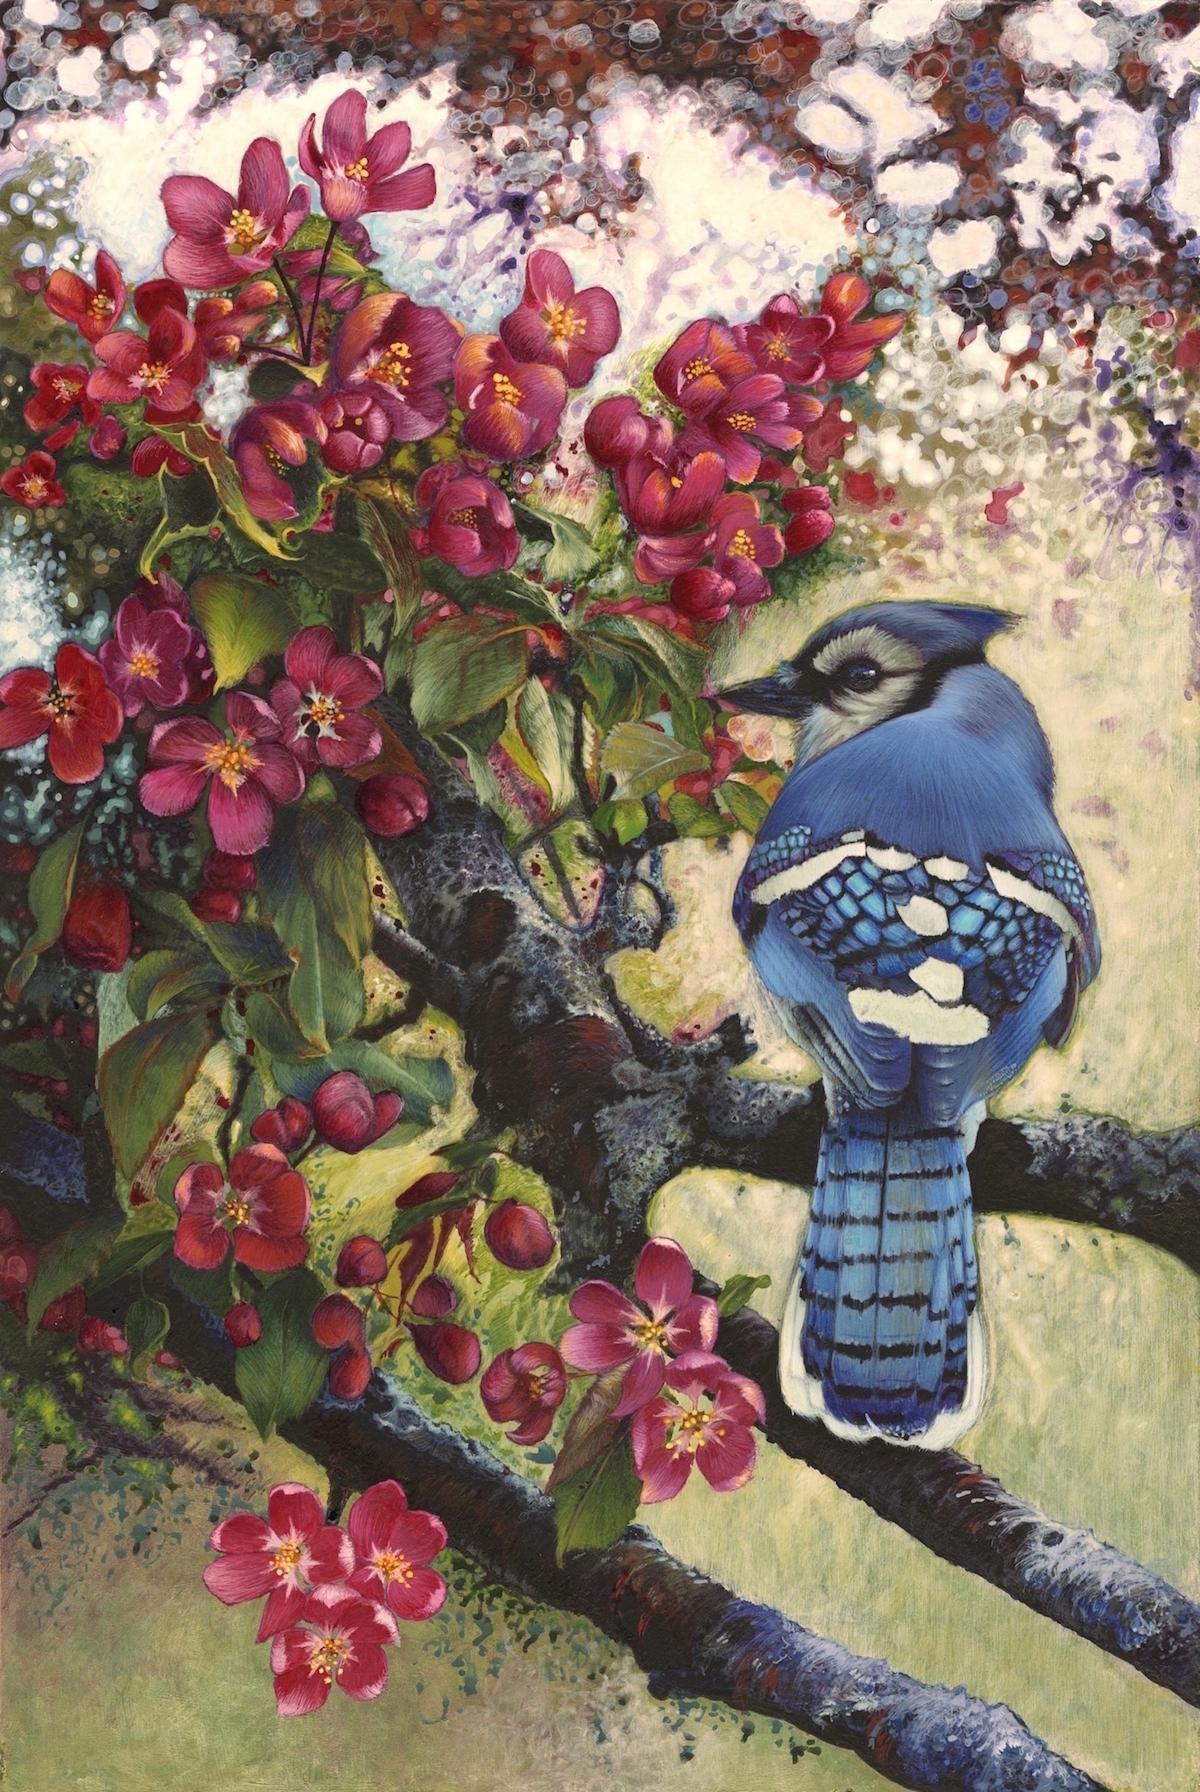 Add Artwork | Wallhanging by John Serediuk | Artists for Conservation